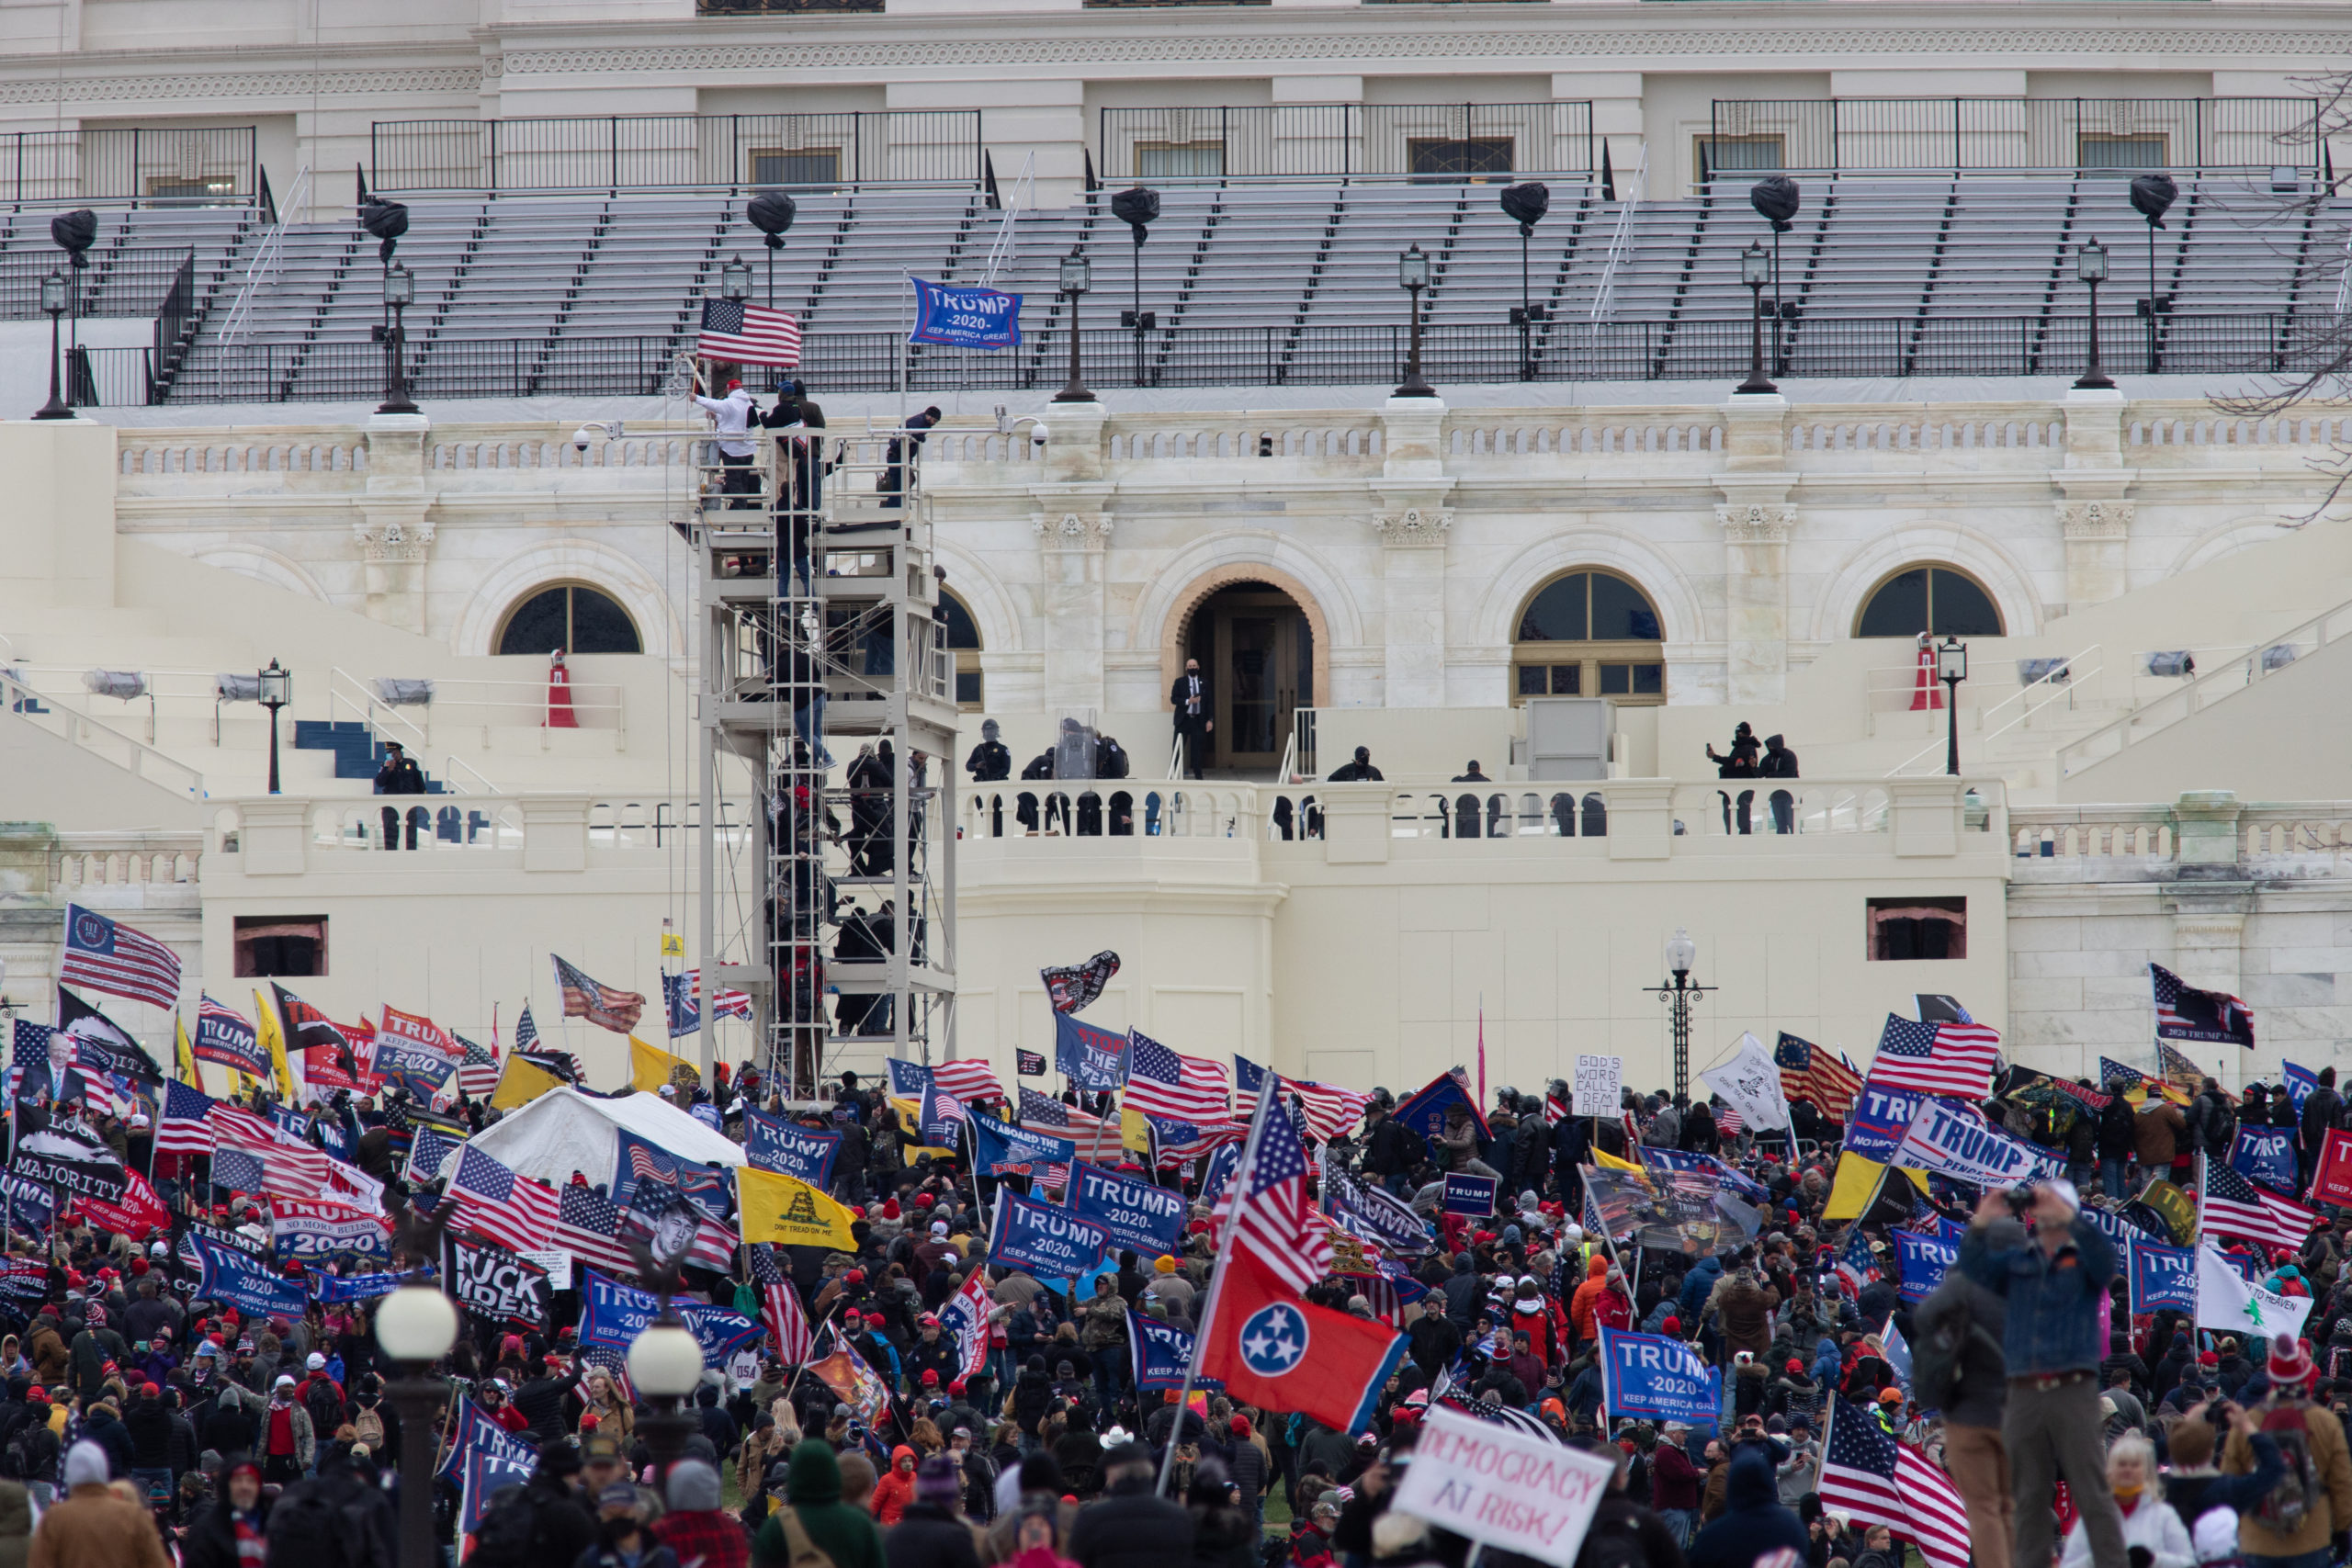 Supporters of former President Donald Trump gathered outside the U.S. Capitol Building before eventually shoving their way in on January 6, 2021 in Washington, D.C. (Kaylee Greenlee - Daily Caller News Foundation)